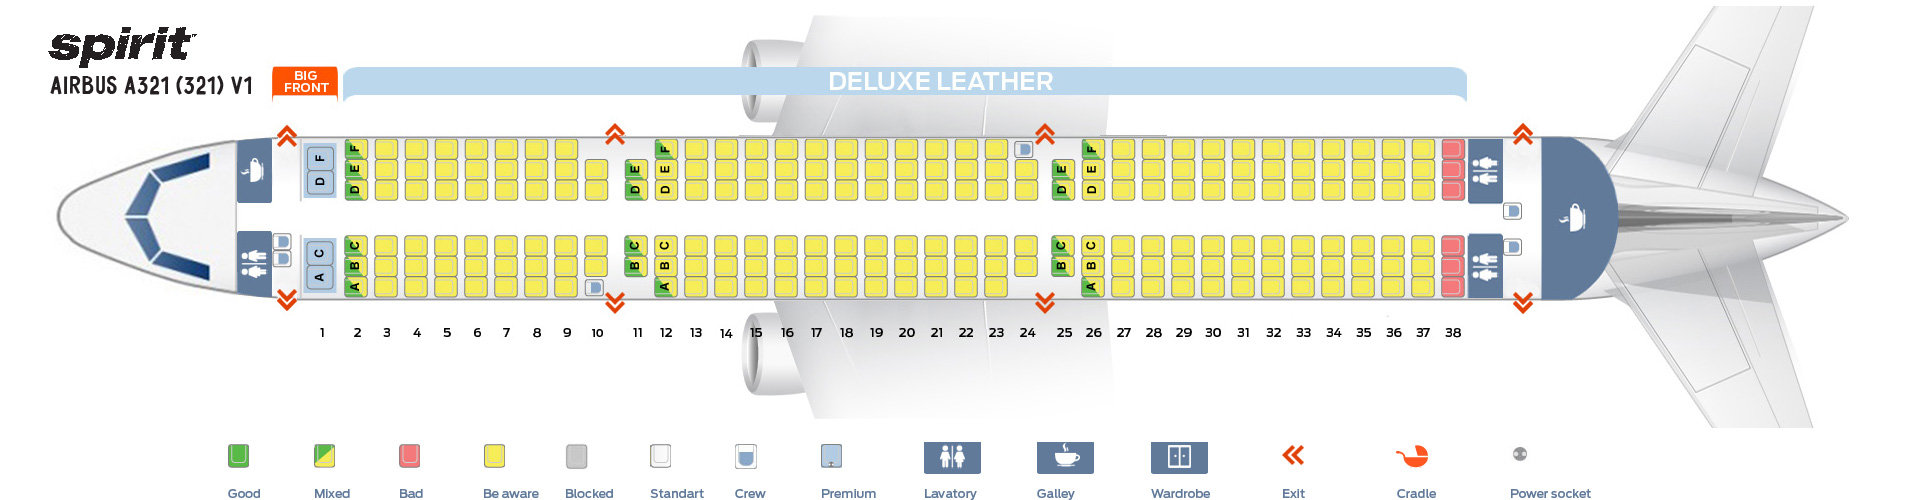 Seat Map Airbus A321-200 V1 Spirit Airlines